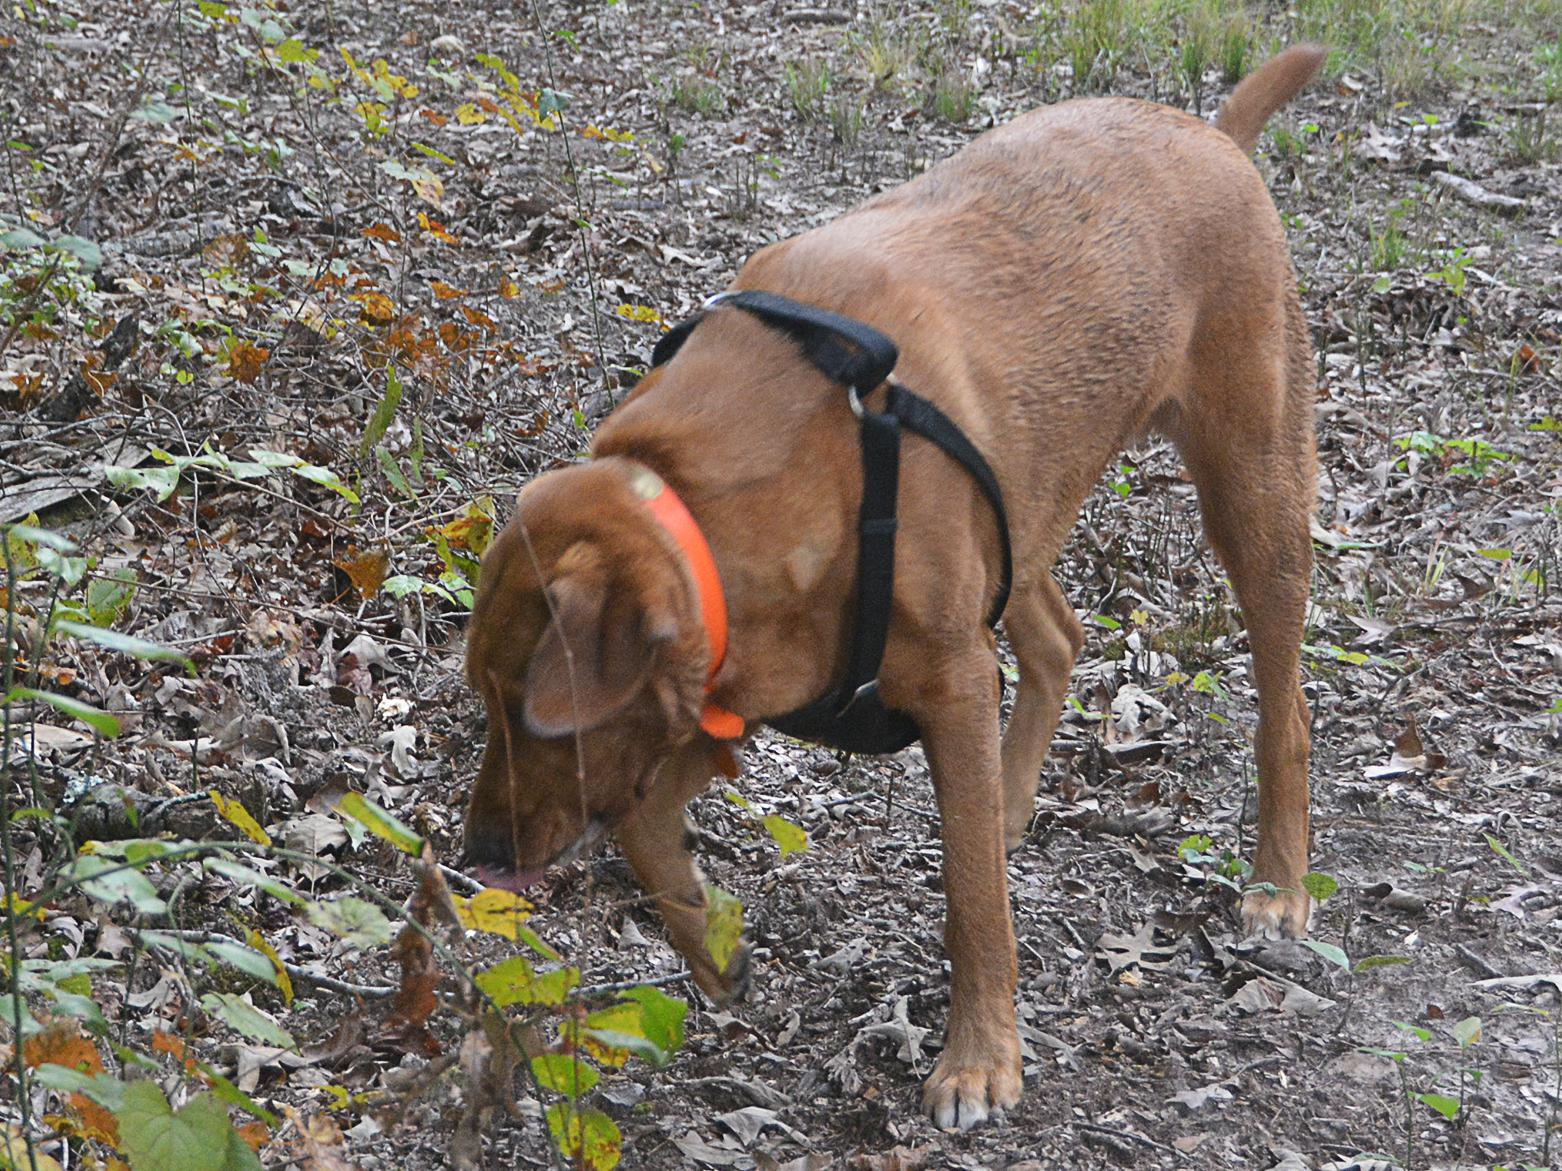 Large, reddish-brown dog wearing a shoulder harness sniffs the ground in a wooded area.